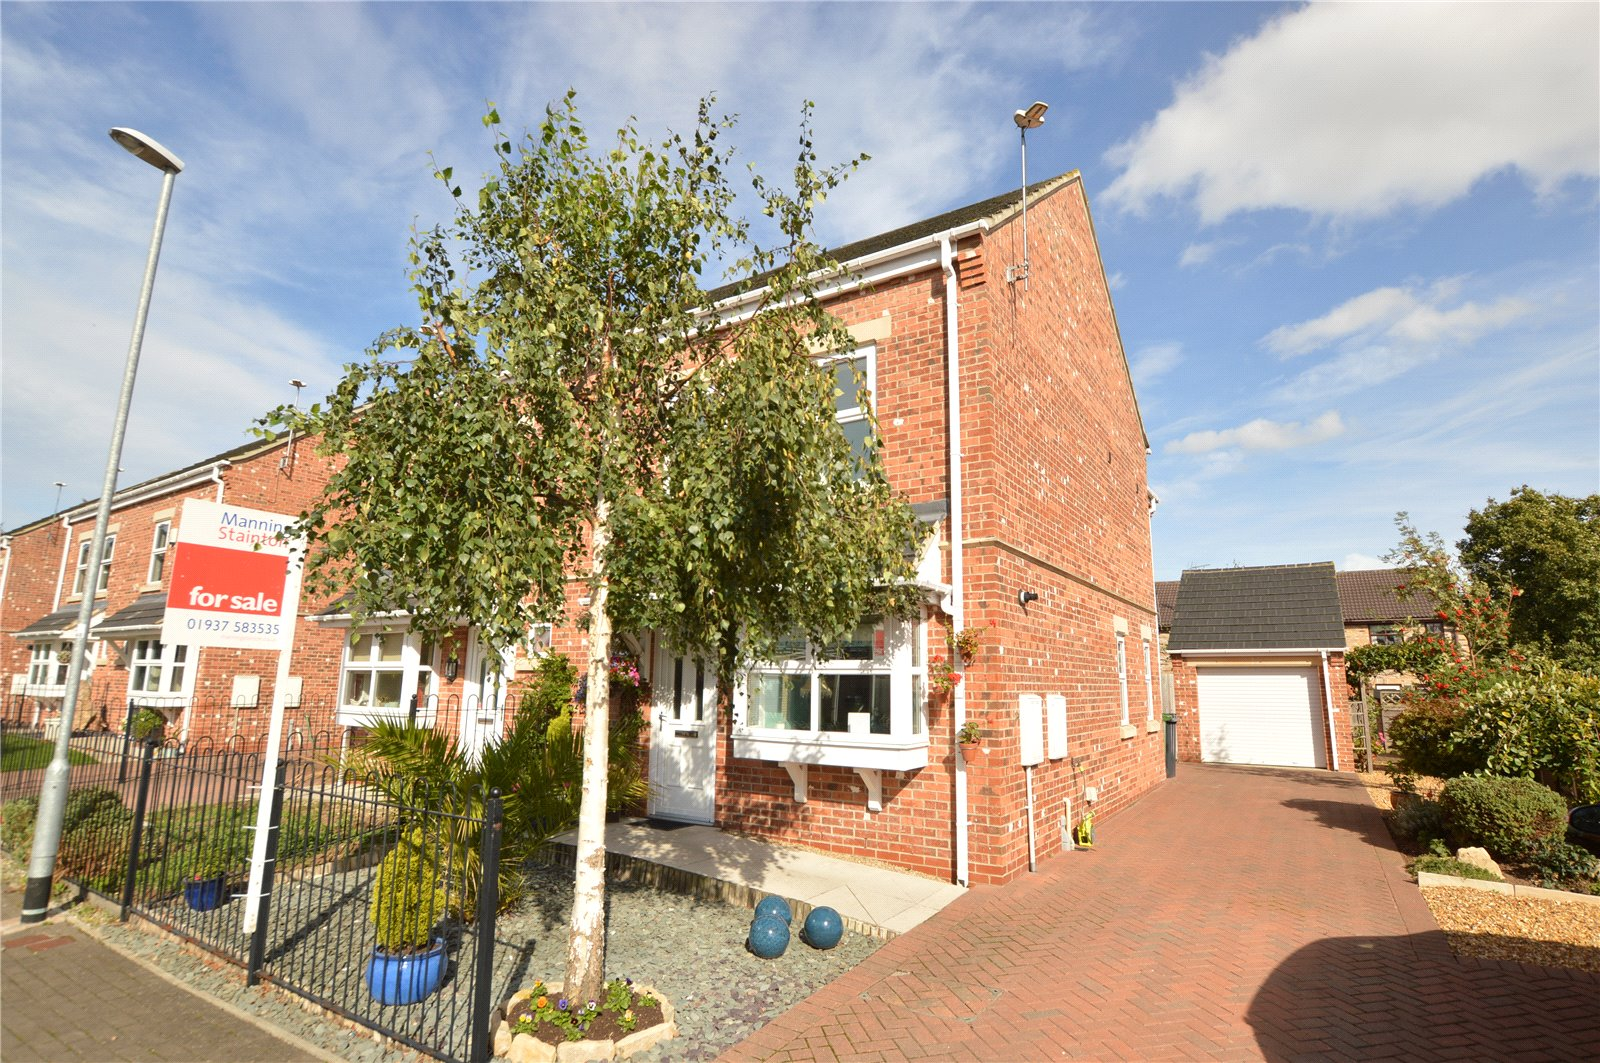 property for sale in Wetherby, exterior semi detached red brick home